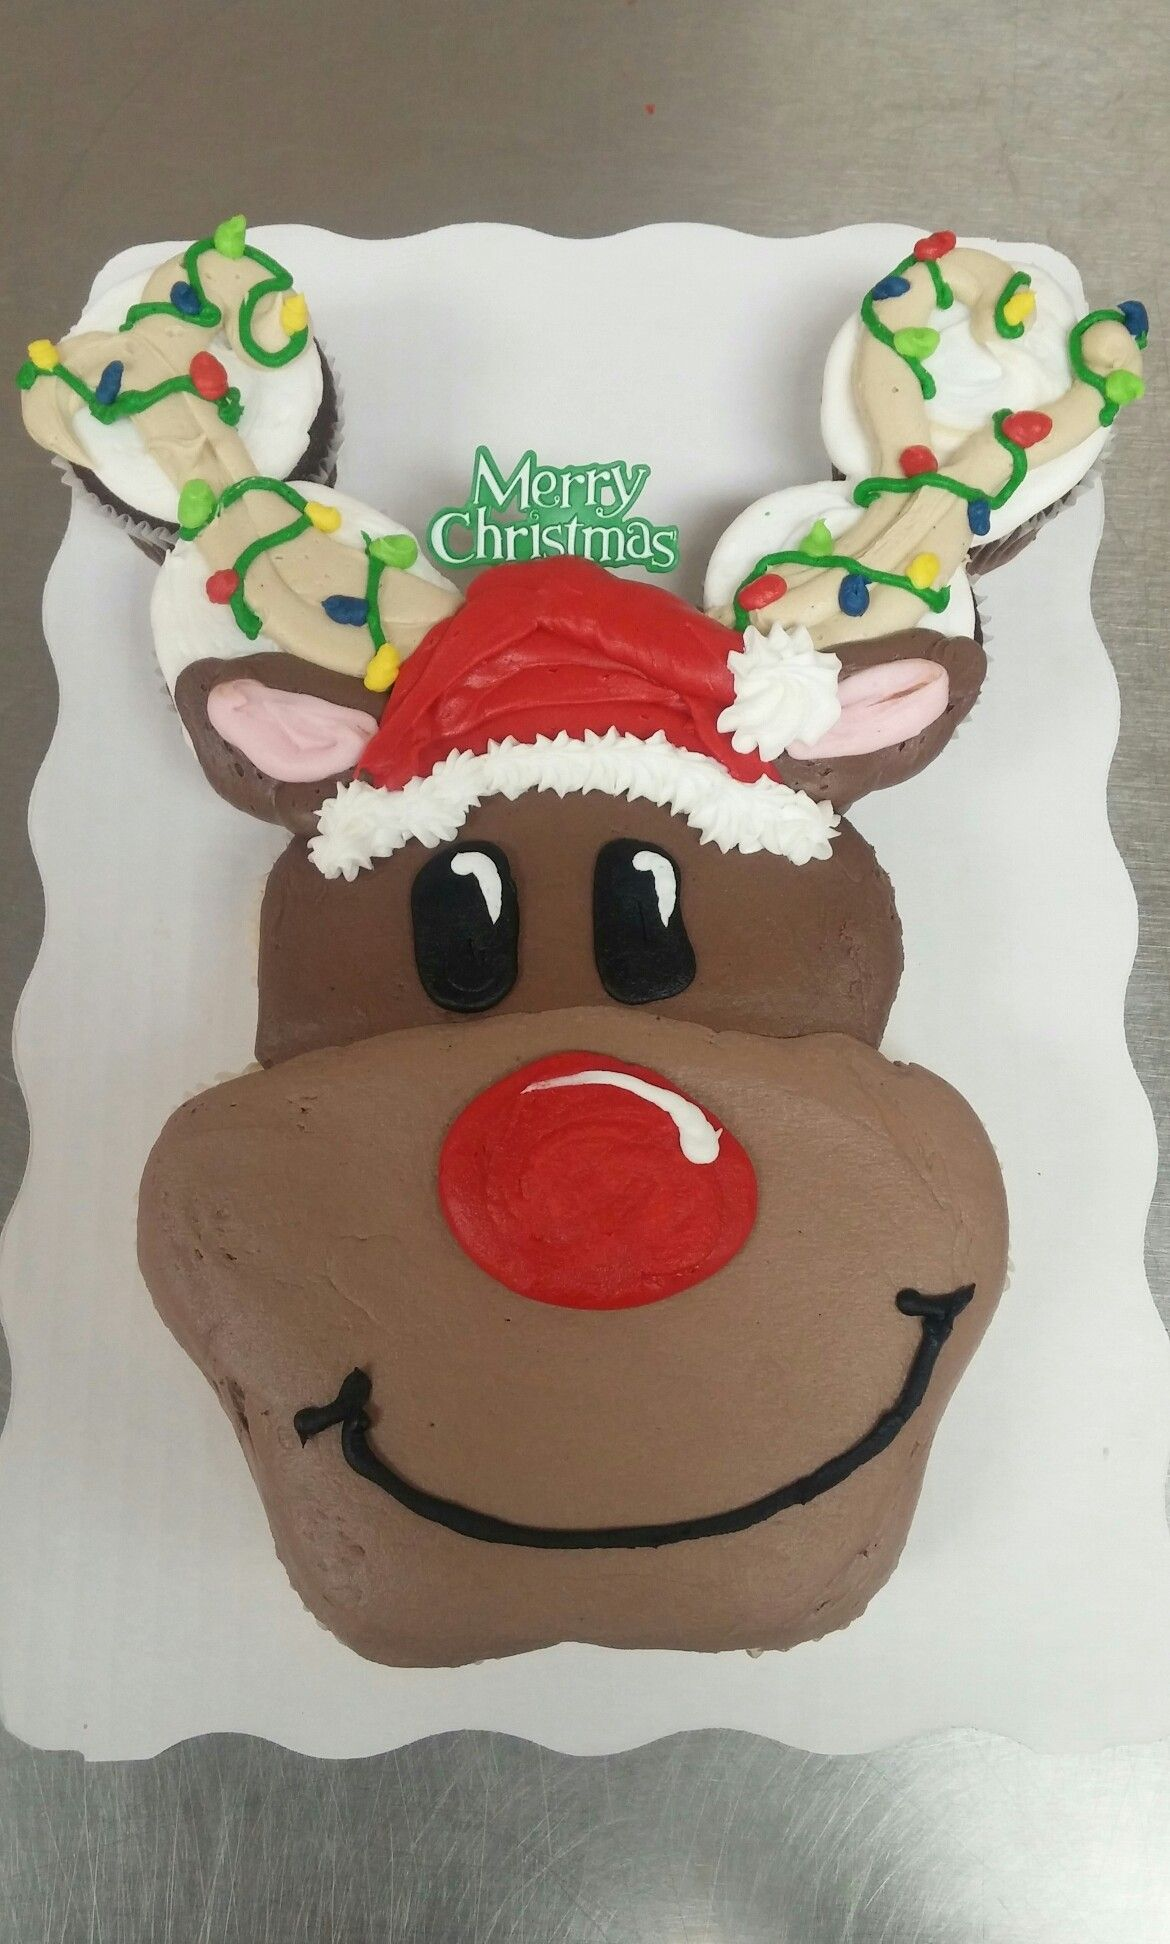 12 Count Rudolph Cupcake Cake With Images Cupcake Cakes Pull